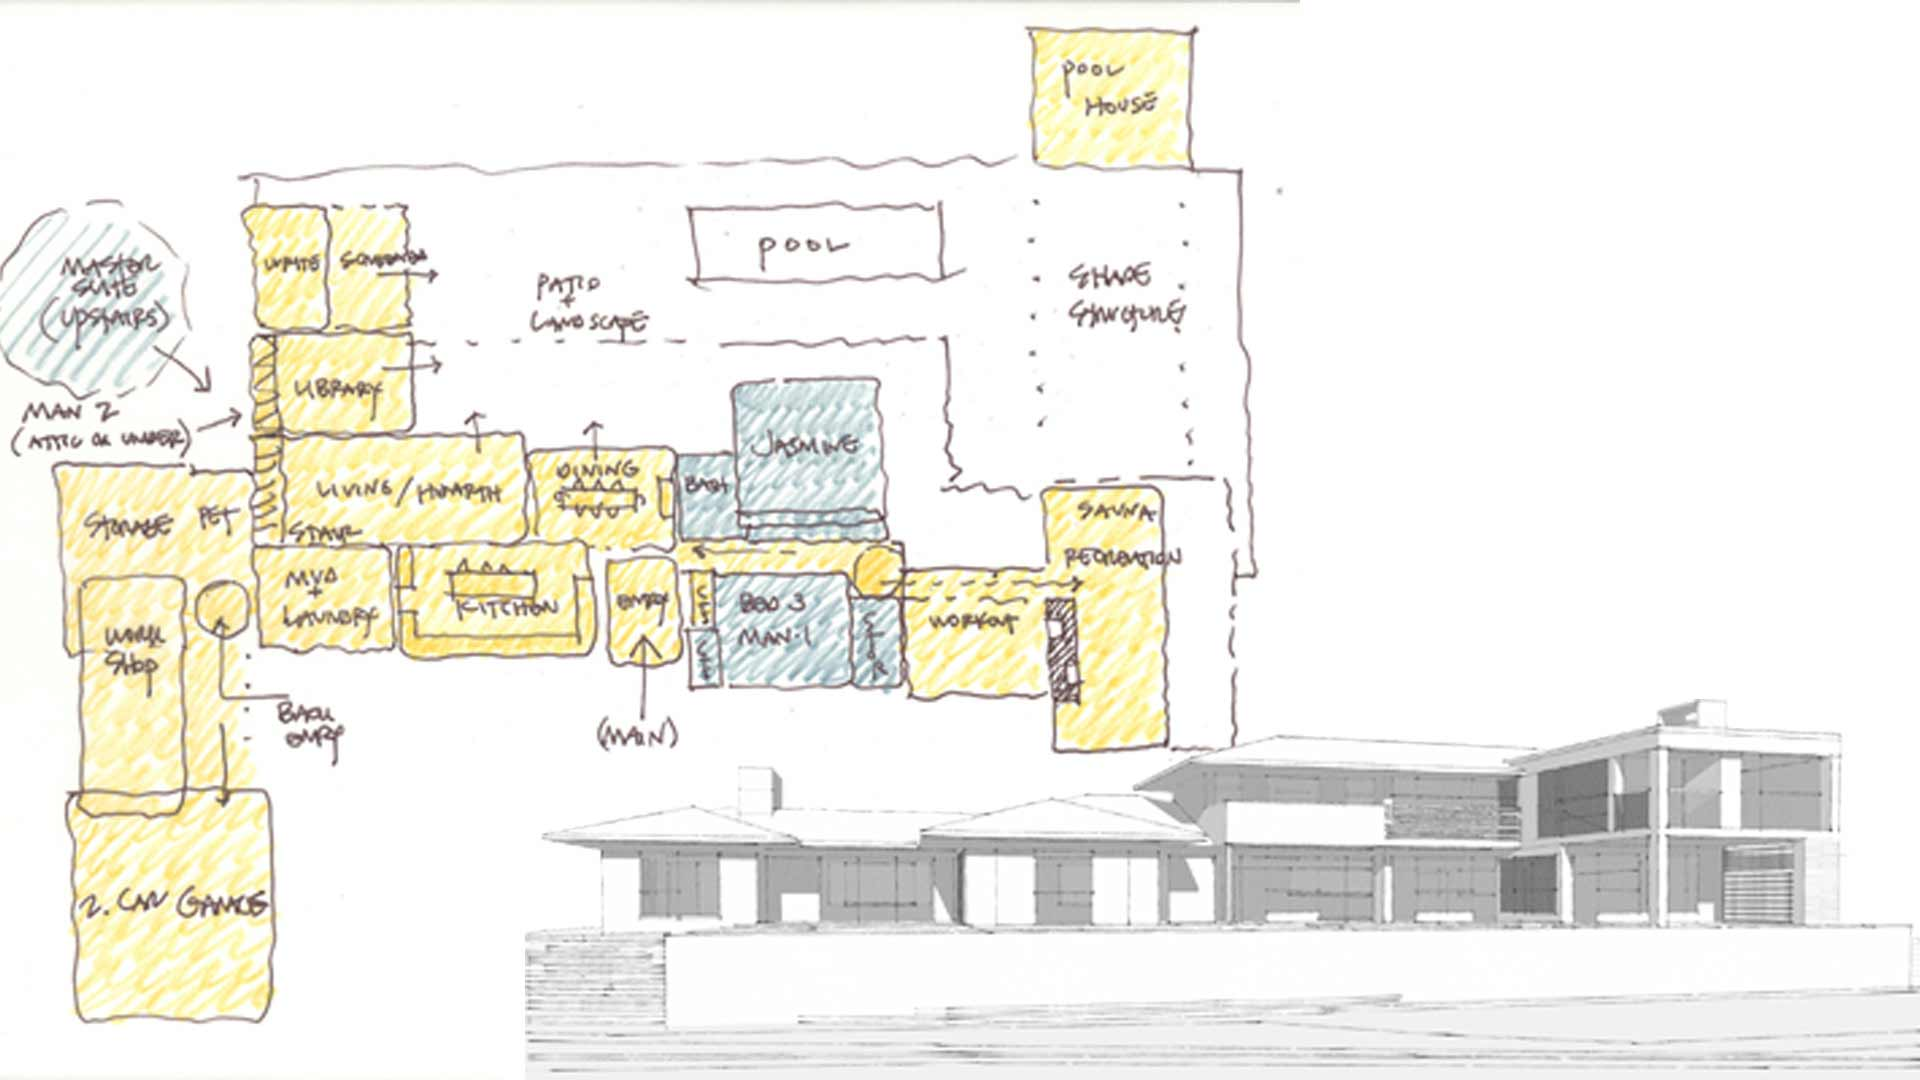 Midcentury Modern Renovation 3 - Concept Sketches - HAUS Architecture, Christopher Short, Indianapolis Architect